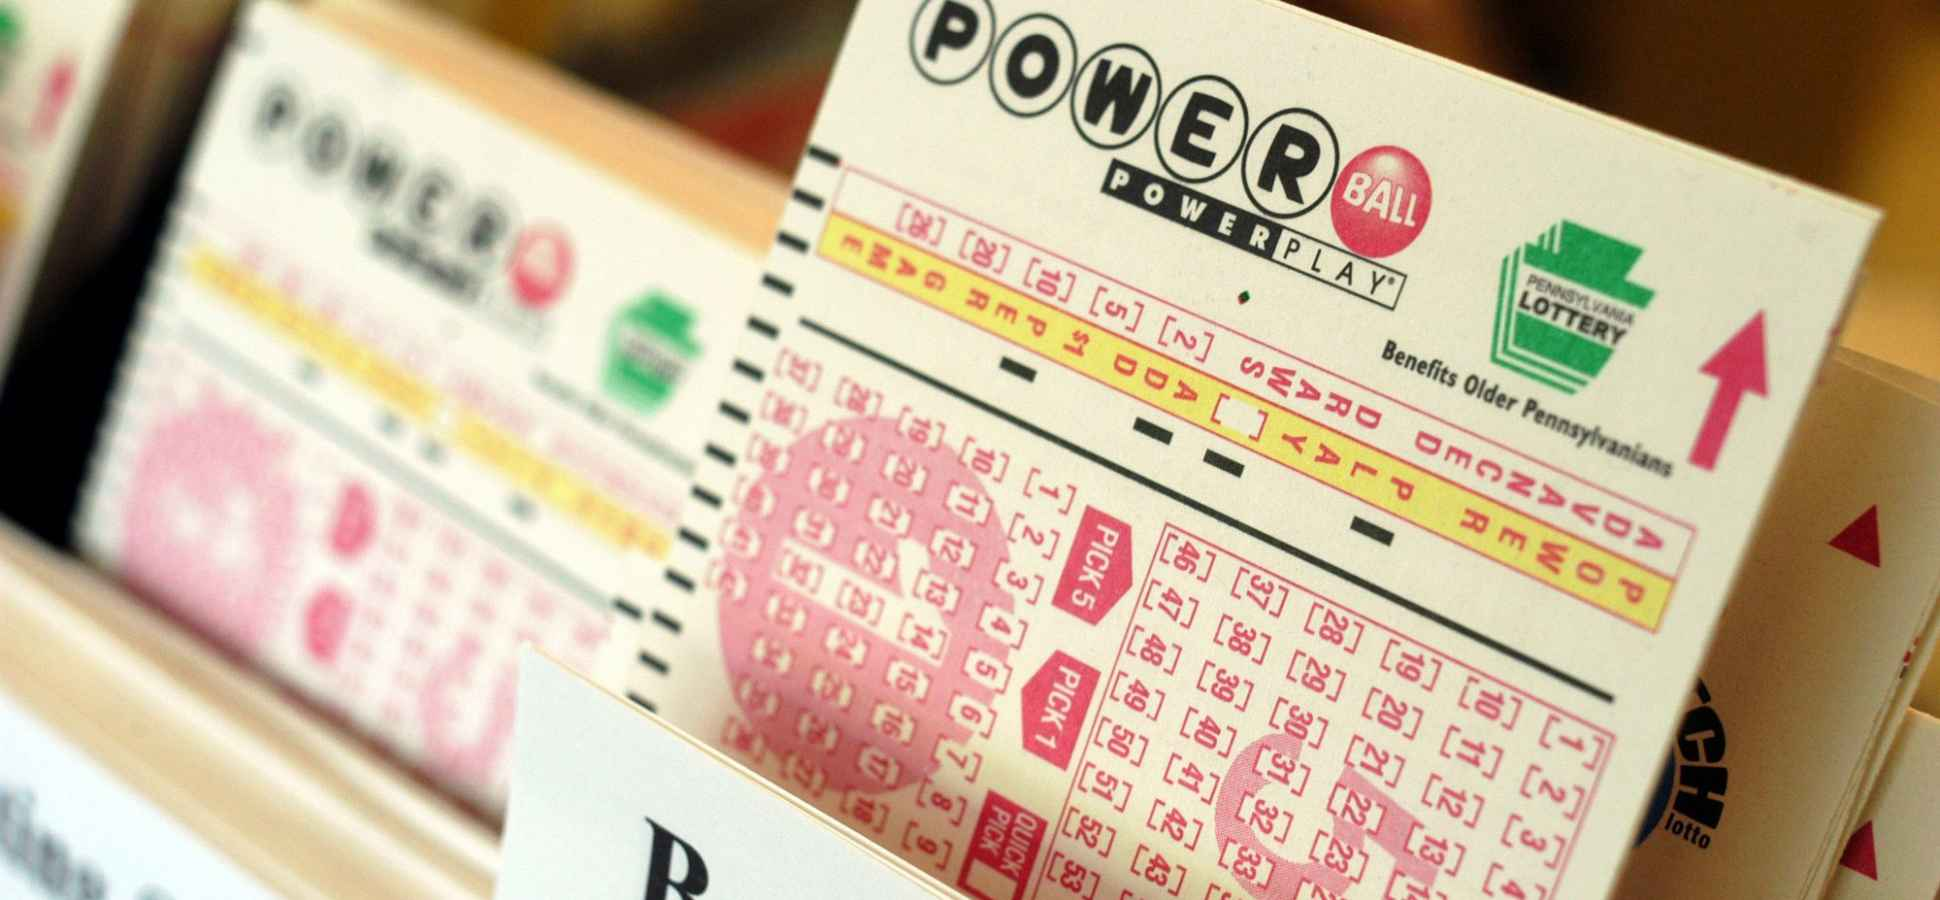 Plan Your Own Powerball: 5 Principles of Attracting Wealth